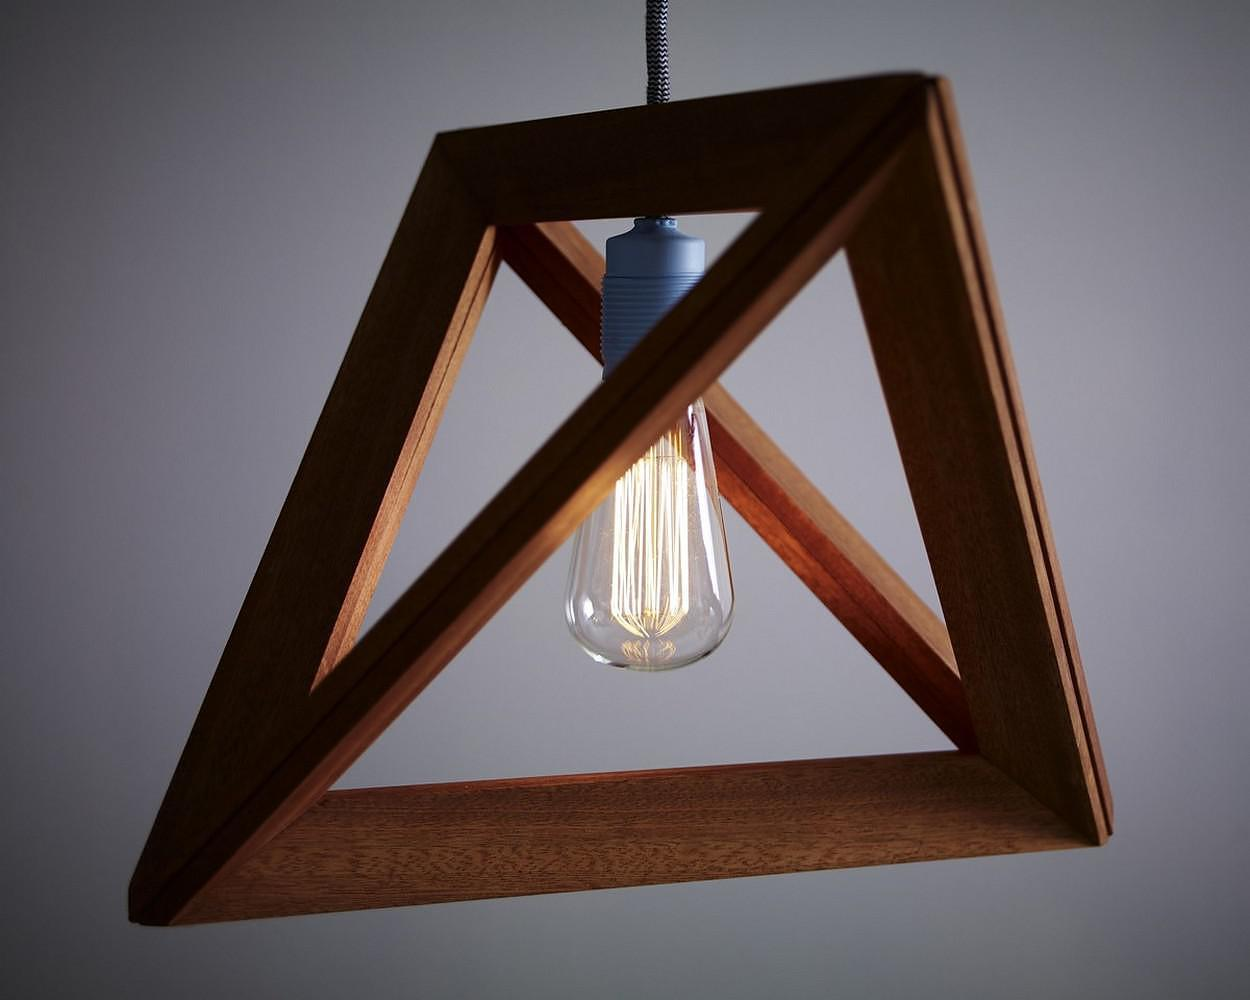 Lightframe Wooden Pendant Lamp Herr Mandel Design